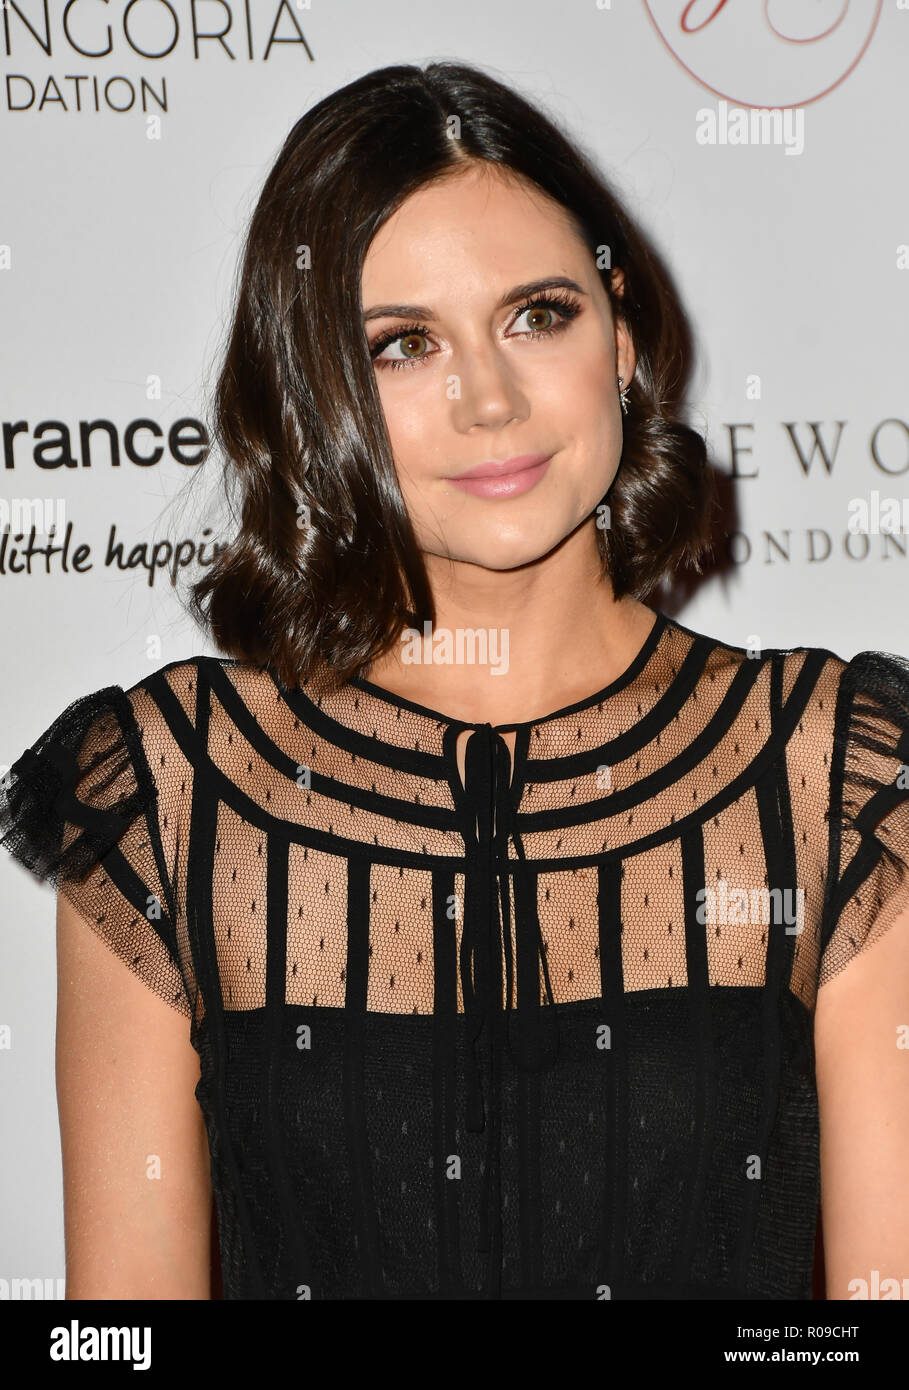 London, UK. 02nd Nov, 2018. Lilah Parsons Arrivers at The Global Gift Gala red carpet - Eva Longoria hosts annual fundraiser in aid of Rays Of Sunshine, Eva Longoria Foundation and Global Gift Foundation on 2 November 2018 at The Rosewood Hotel, London, UK. Credit: Picture Capital Credit: Picture Capital/Alamy Live News - Stock Image